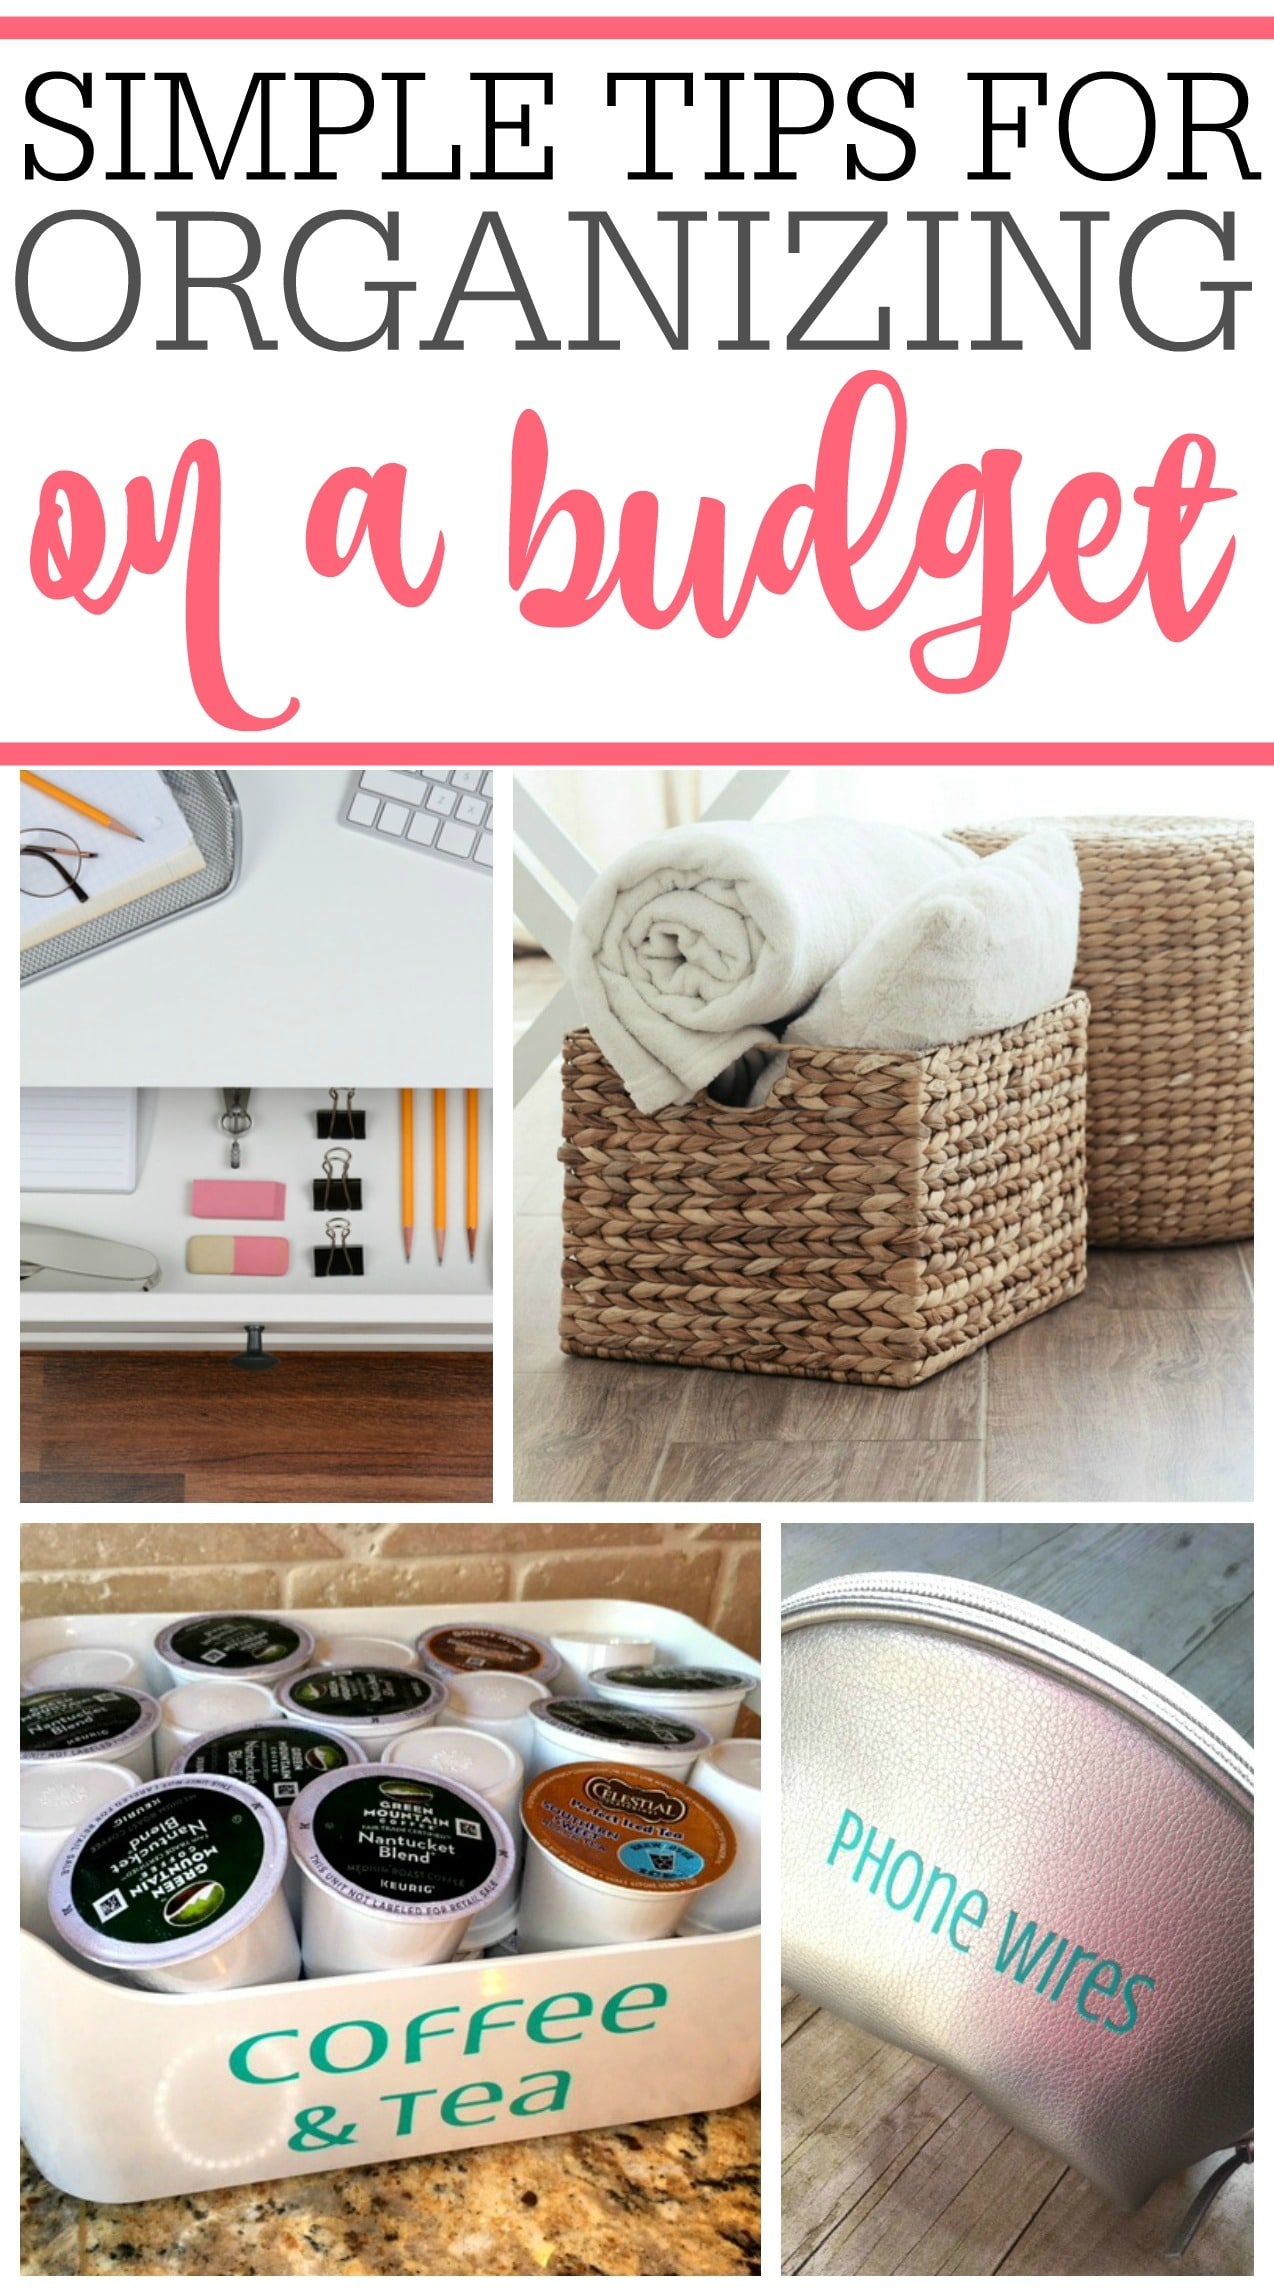 You don't need the expensive organizers. Check out these simple tips for organizing on a budget. You can organize on a budget that works for you.